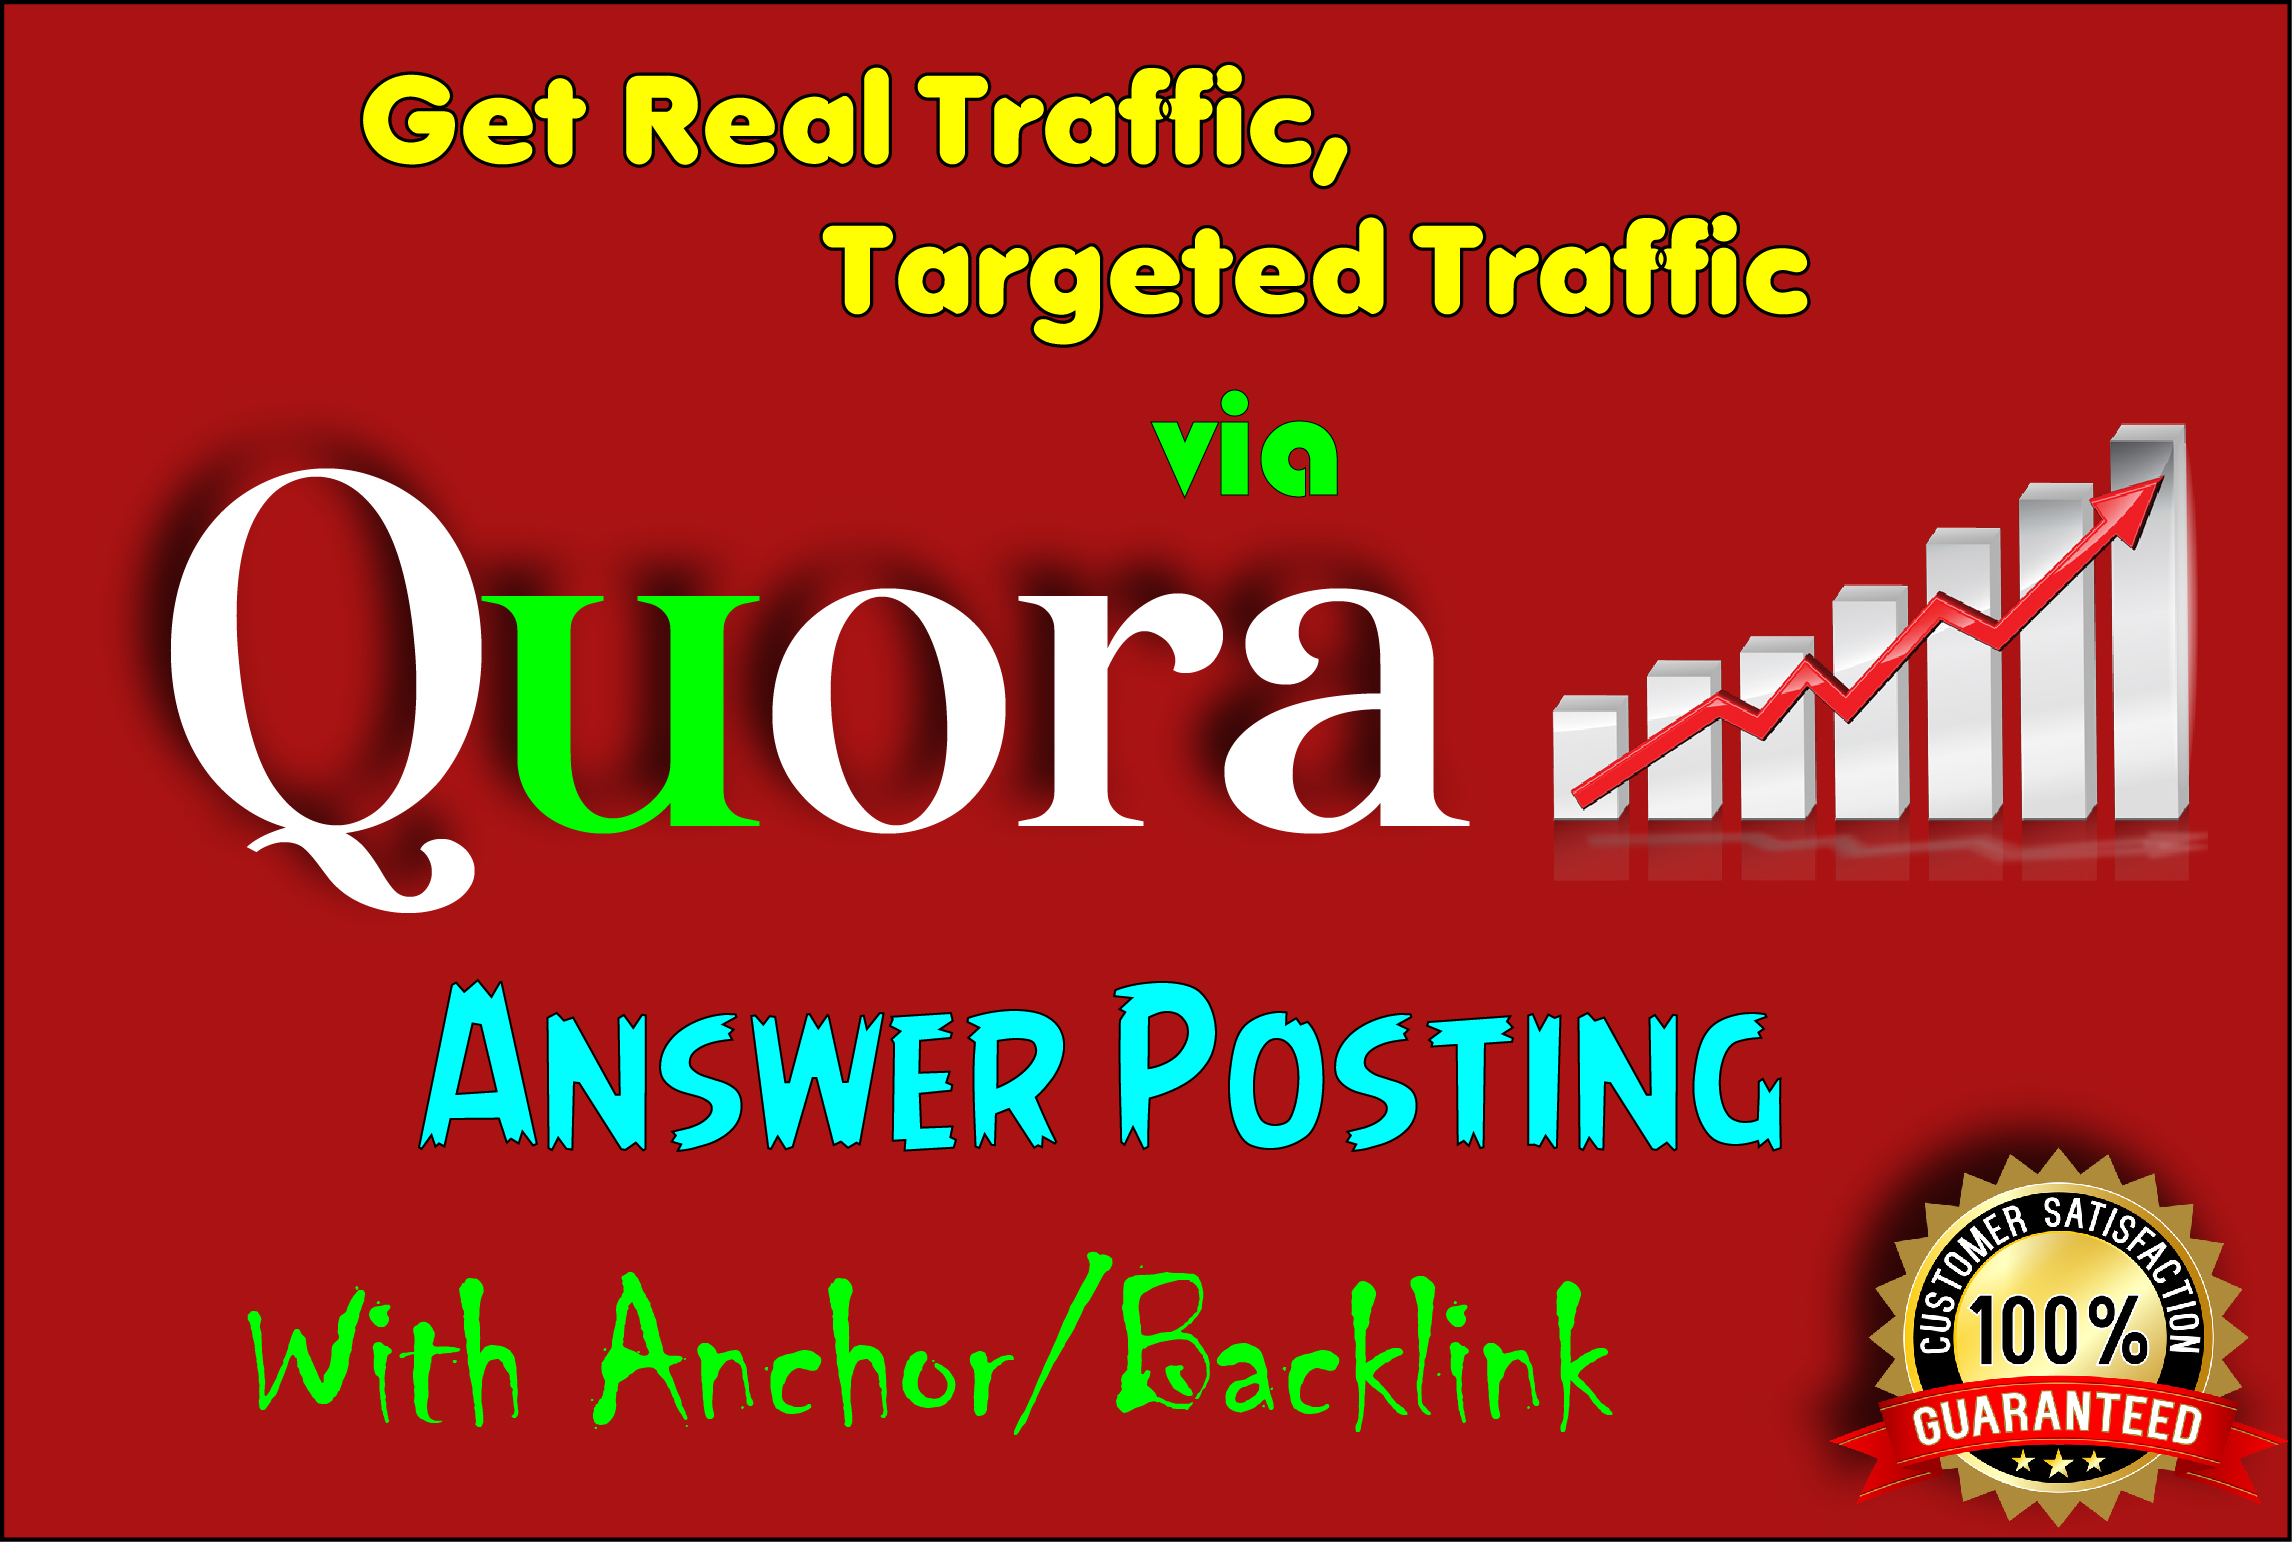 I provide 15 HQ Quora answer to promote your website via backlink